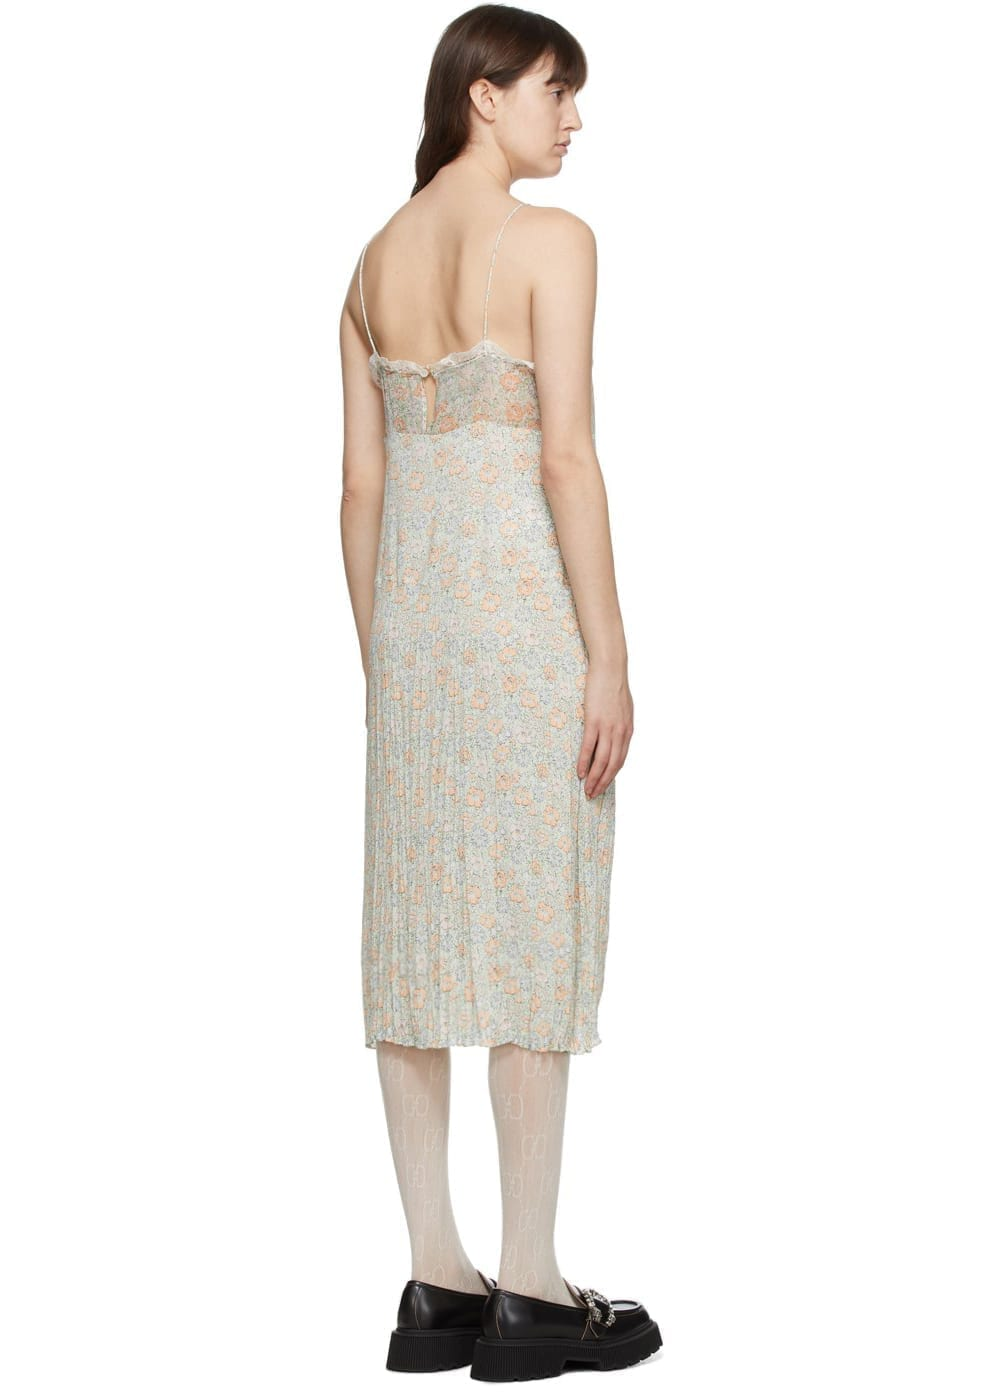 GUCCI Green Liberty London Edition Floral Slip Dress